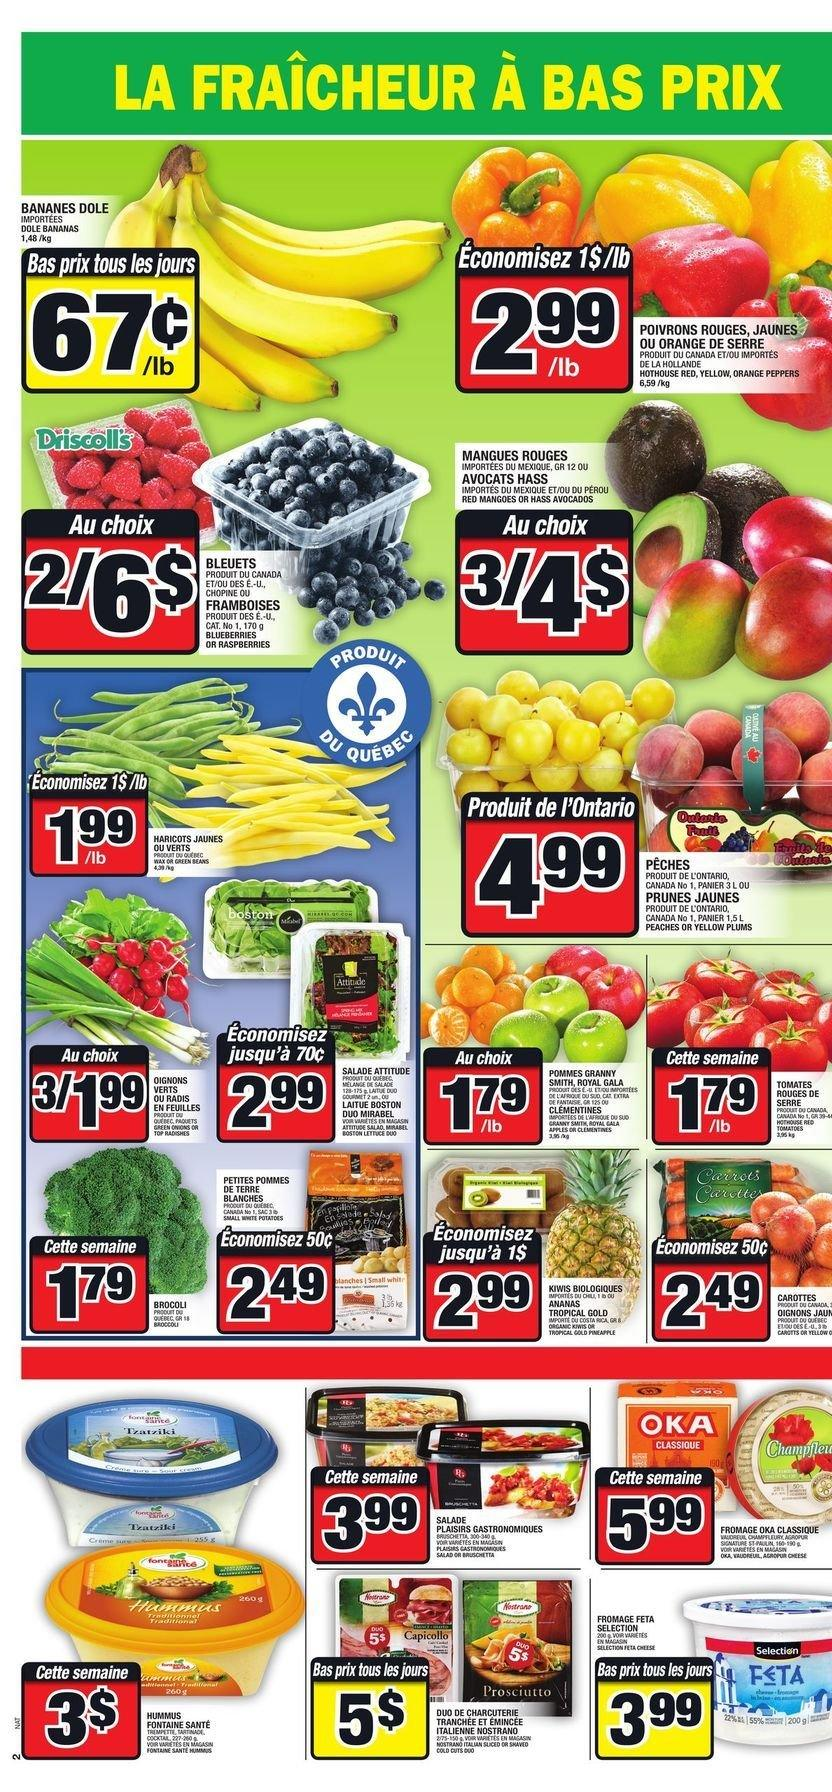 Super C Flyer - July 26, 2018 - August 01, 2018 - Sales products - avocado, bananas, blueberries, fêta, mango, raspberries, hummus, plums, prunes, peaches, salade, ananas, banane, feuilles, fromage, haricot, prune, oignons, orange, panier, poivrons, pommes de terre, radis, pêche. Page 4.